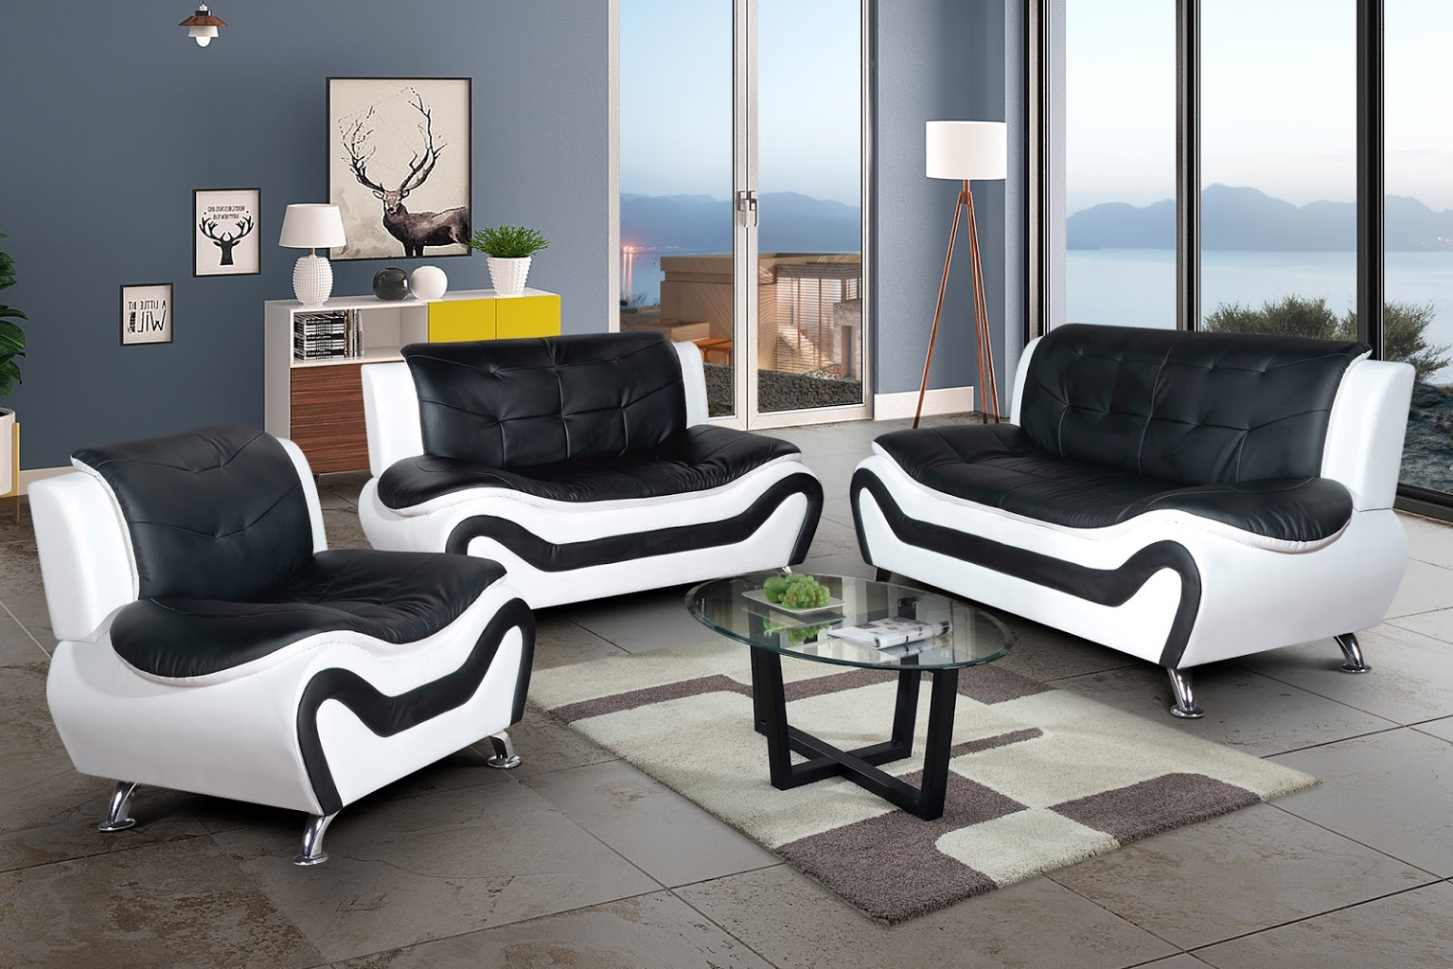 Image of: Frady Black And White Faux Leather Modern Living Room Sofa For Sale Online Ebay